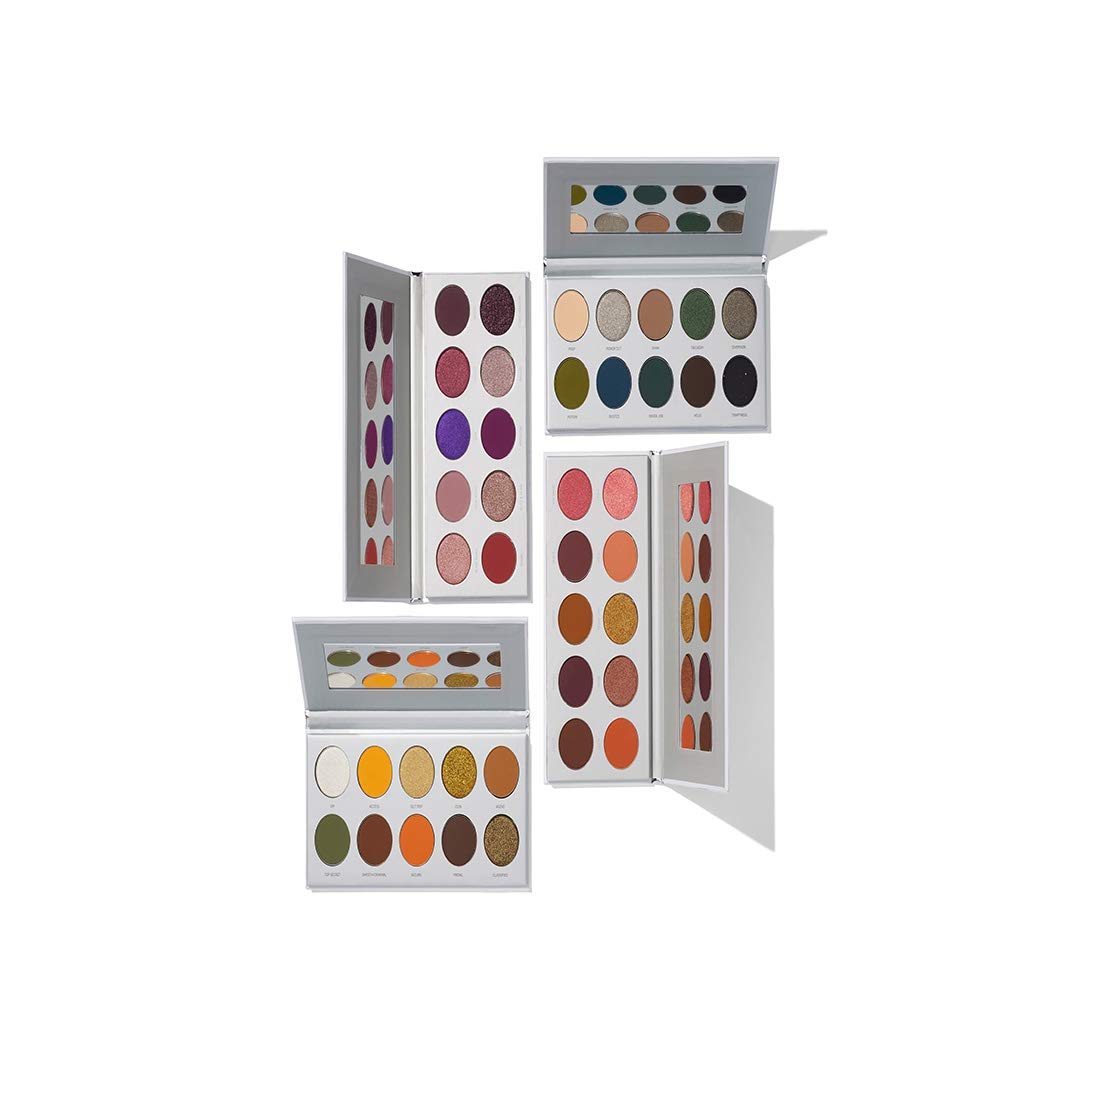 Morphe x Jaclyn Hill - Eyeshadow Palette Collection